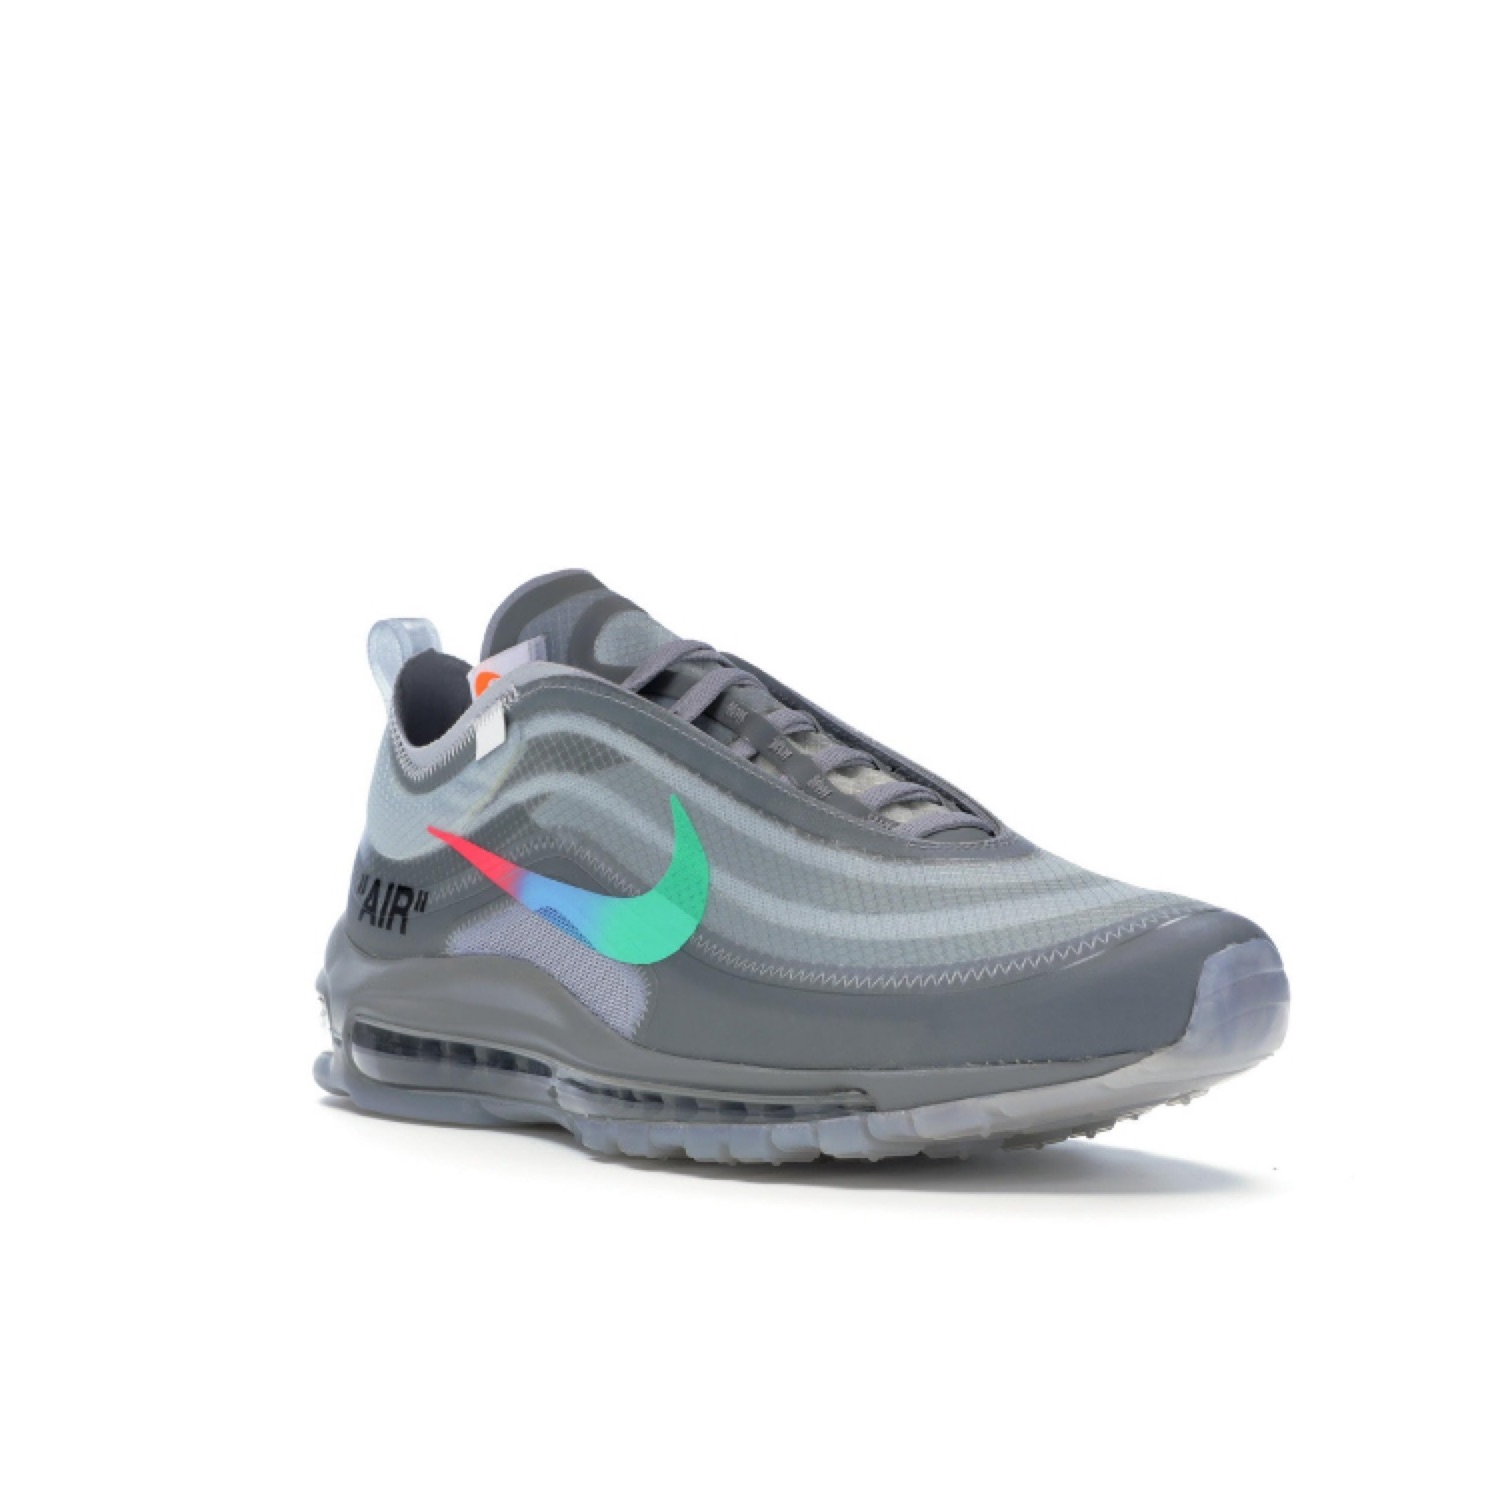 new products dab0f 8bd4c Nike Air Max 97 Off-White Menta